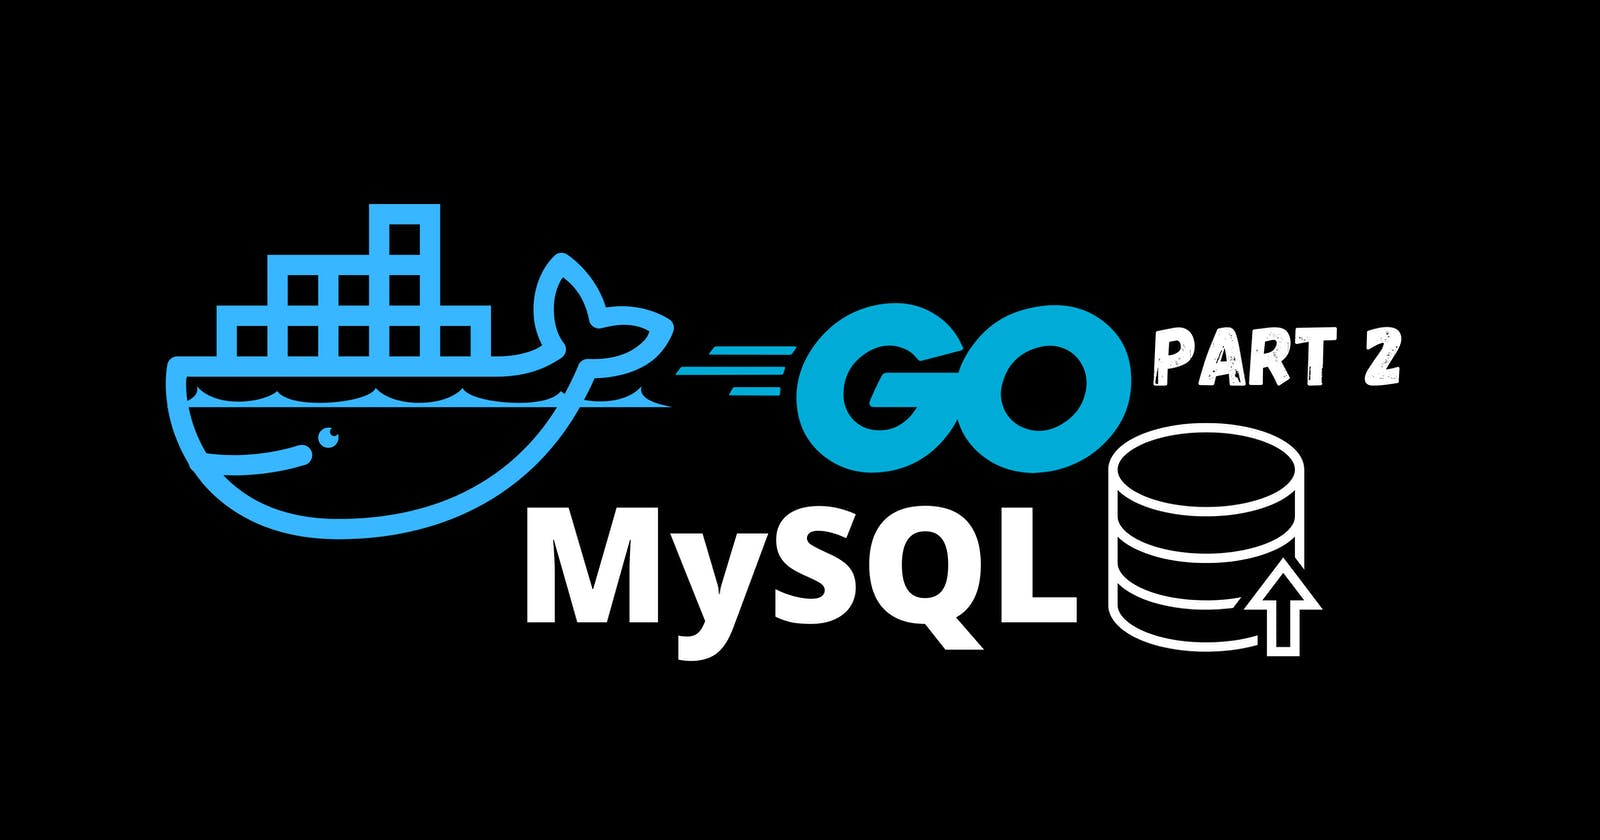 Blog Project with Go, Gin, MySQL and Docker - Part 2